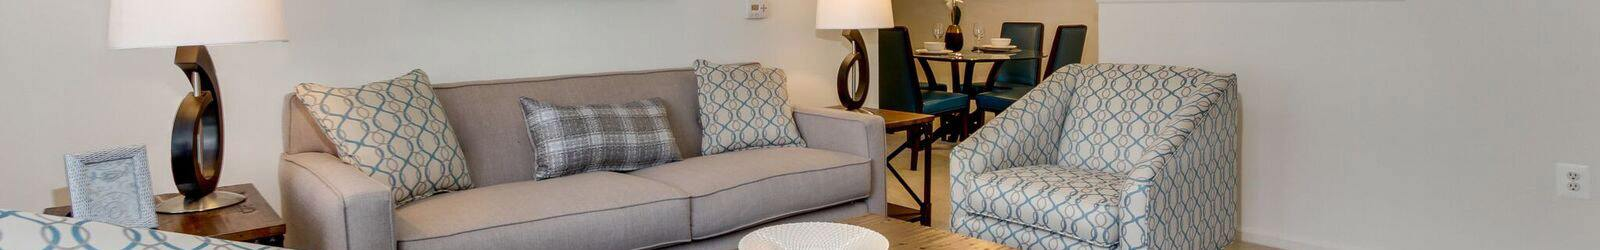 Pet friendly apartments in Freehold